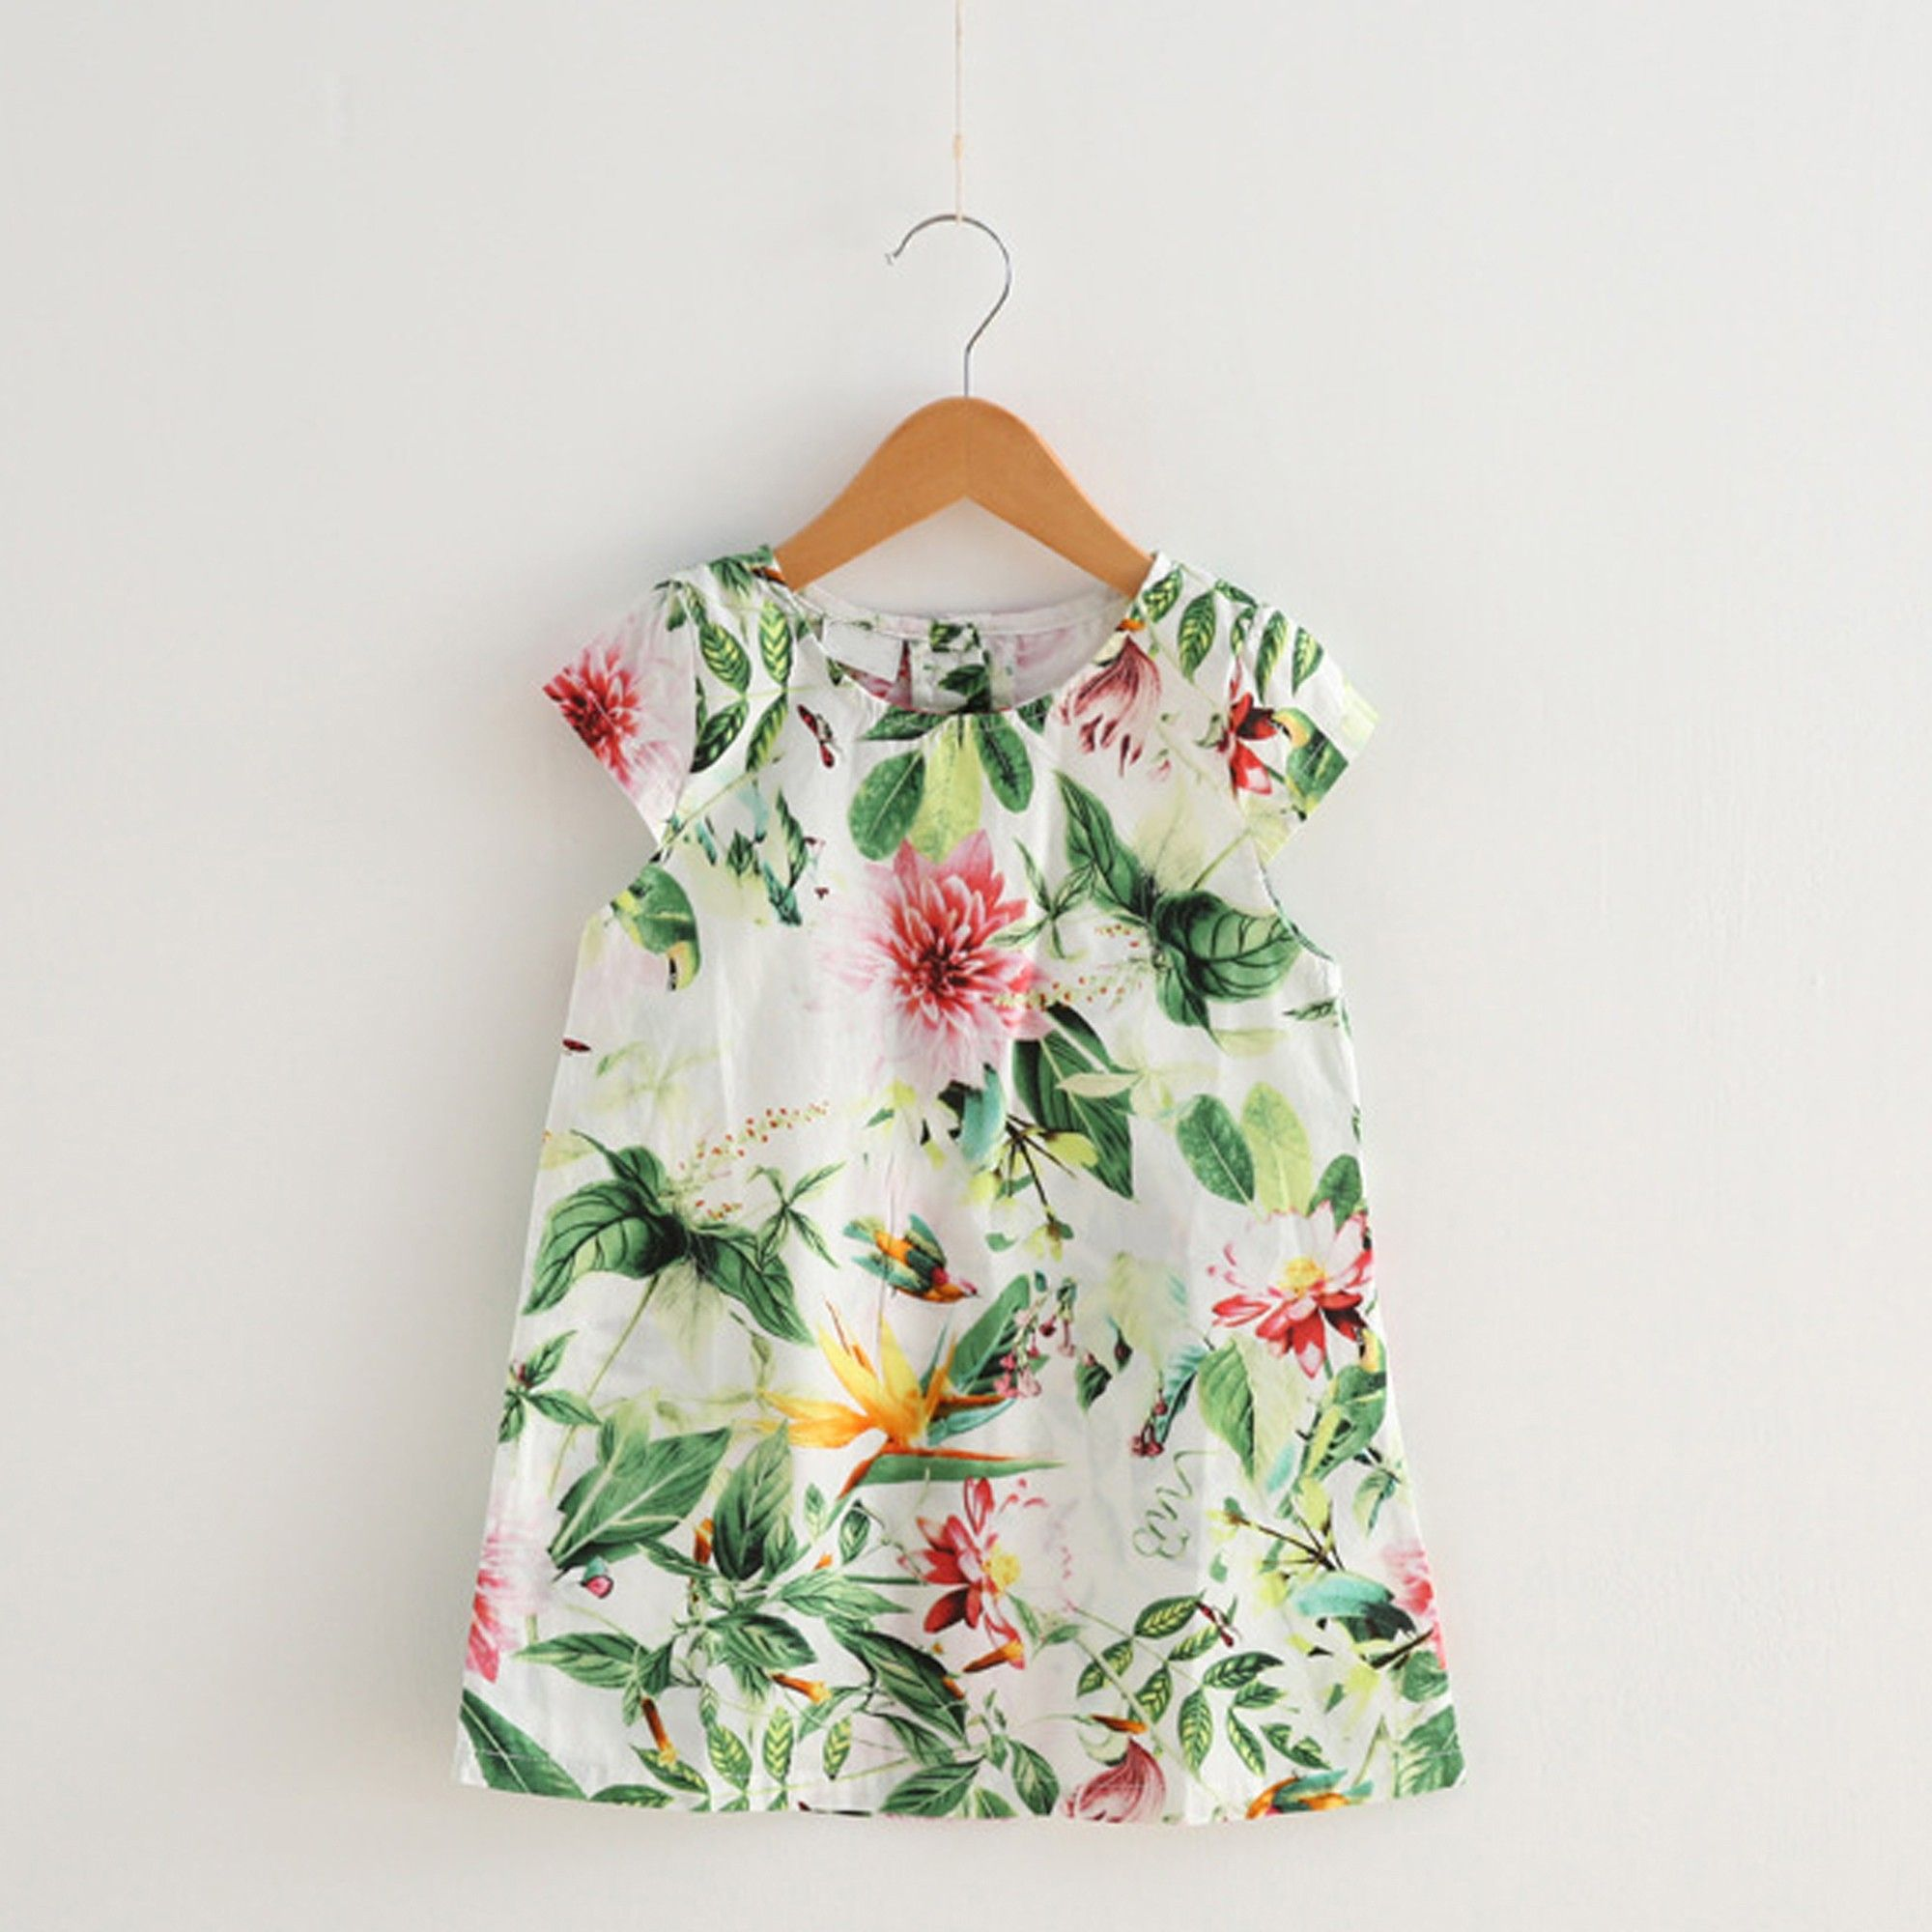 Green Floral Printed Frock - Lil Mantra